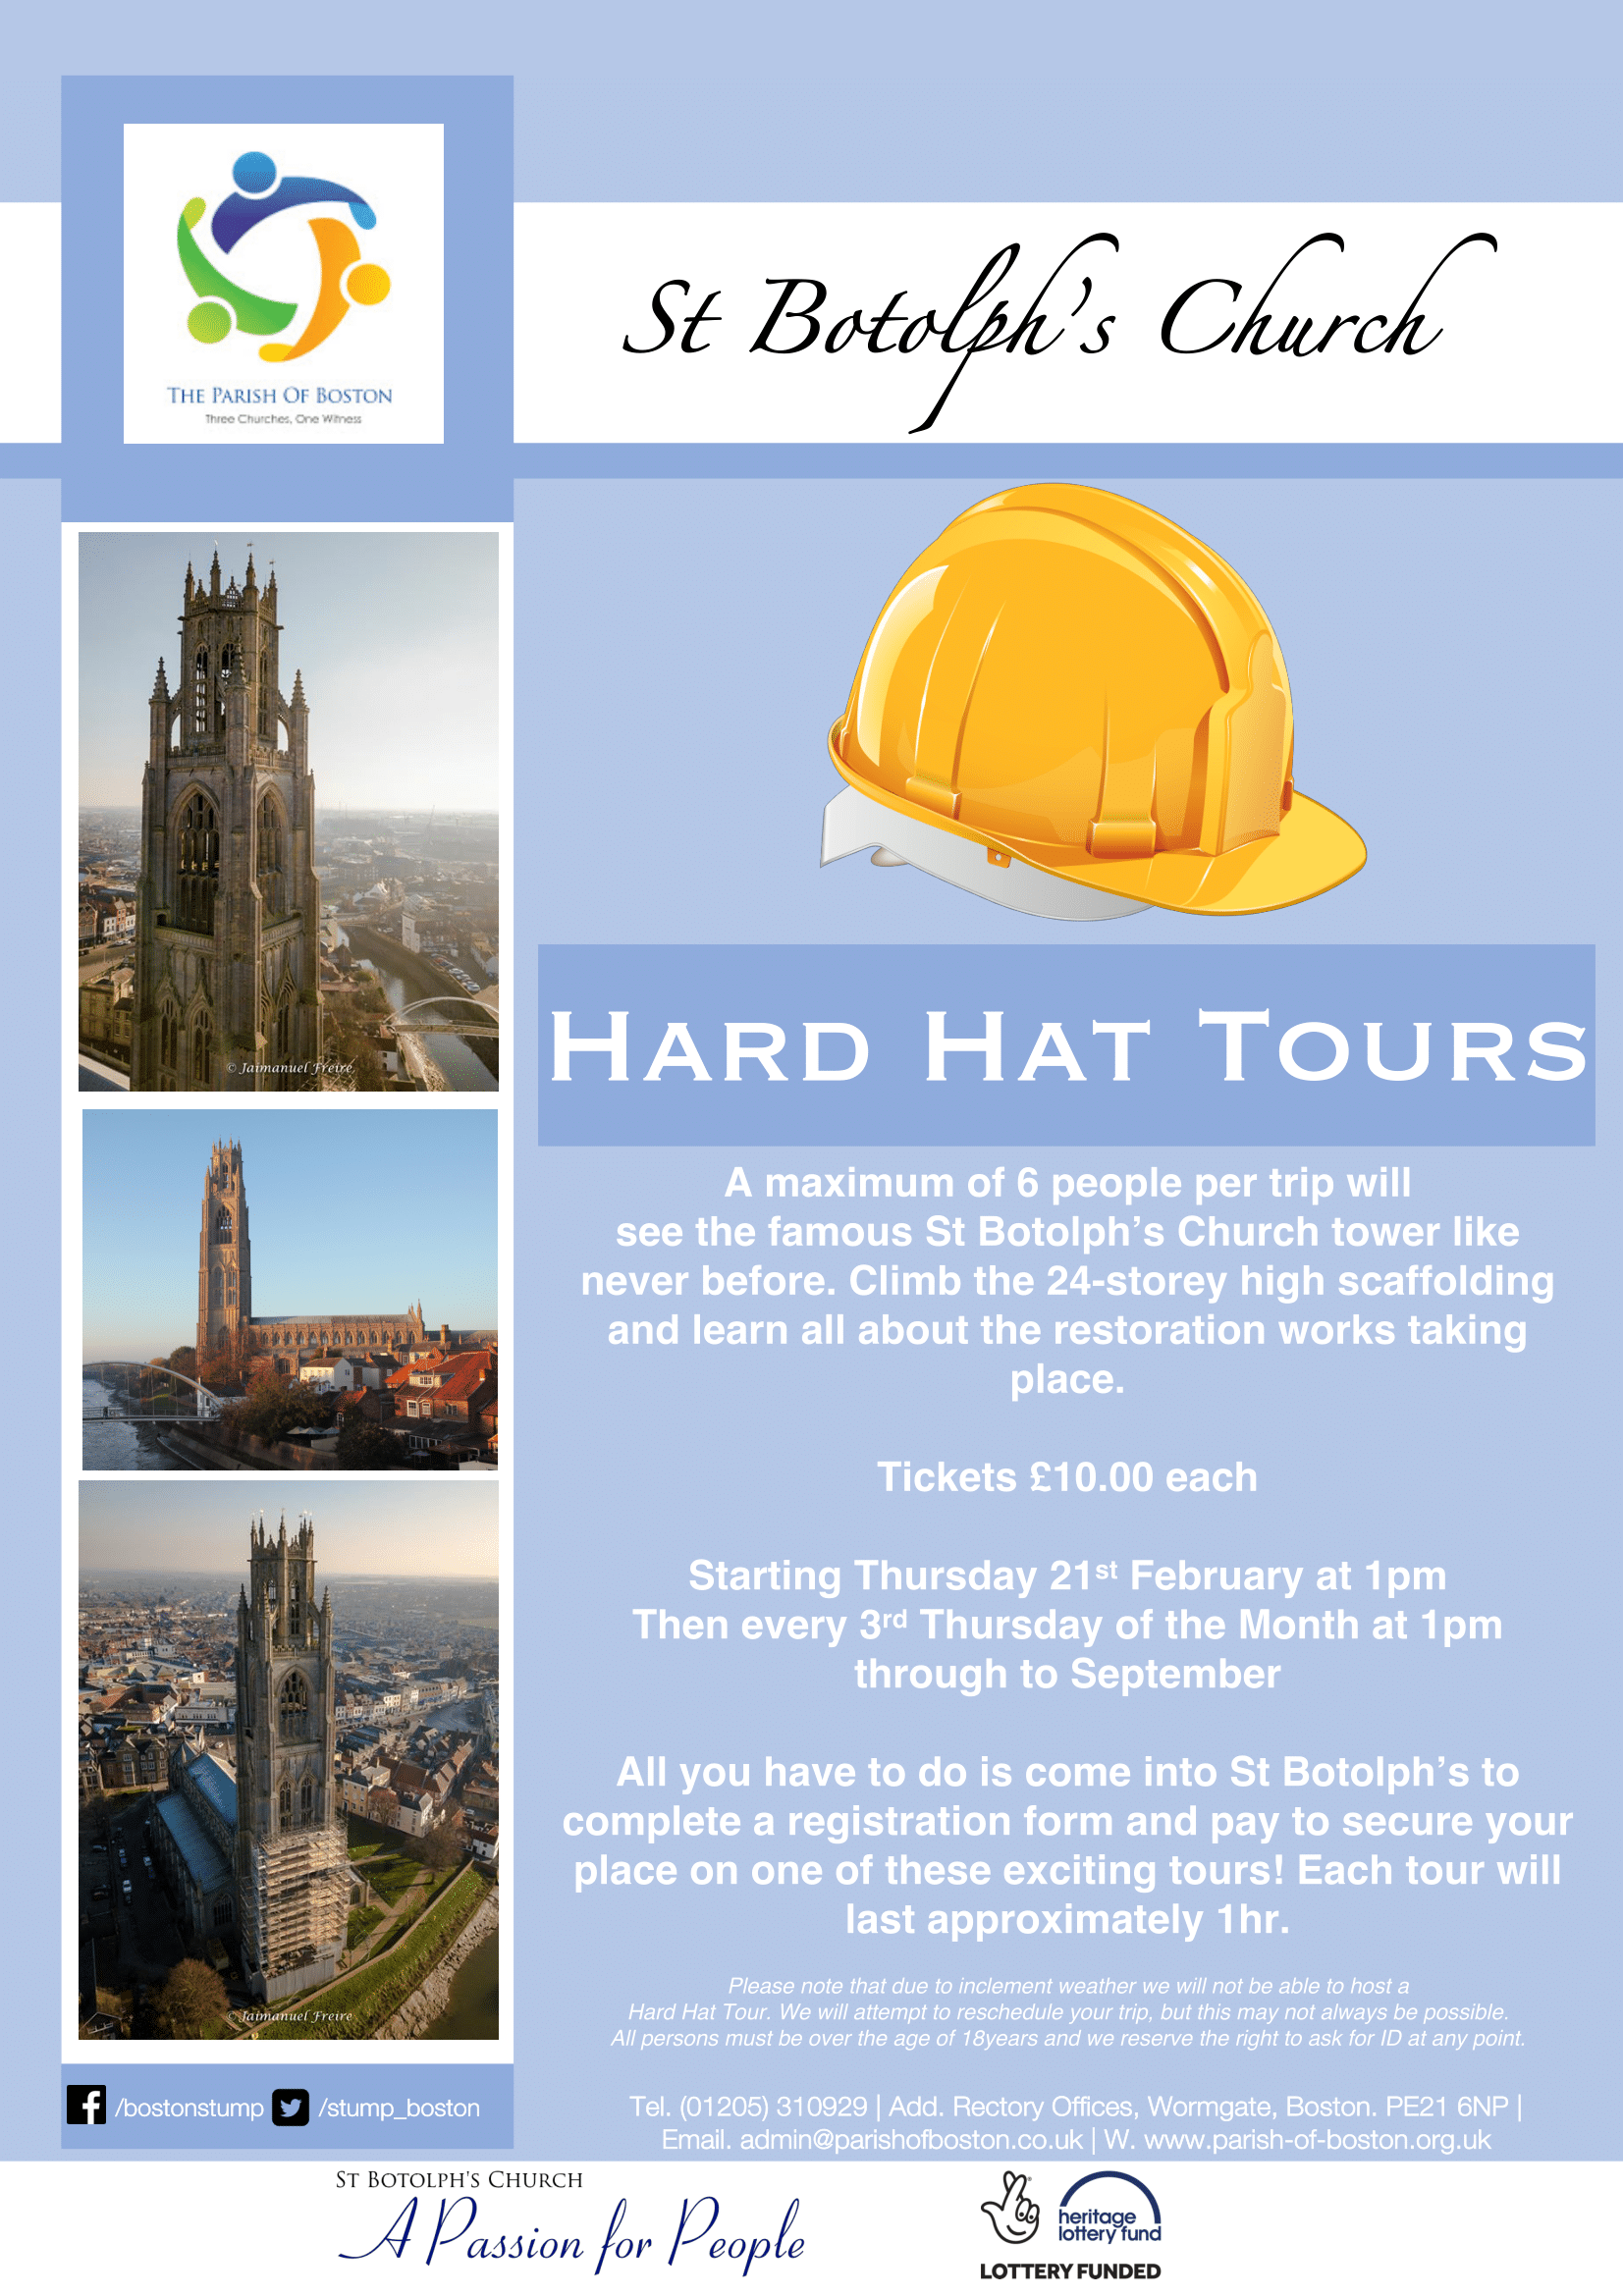 75400b15df6 Hard Hat Tours!Latest news from the Parish of Boston